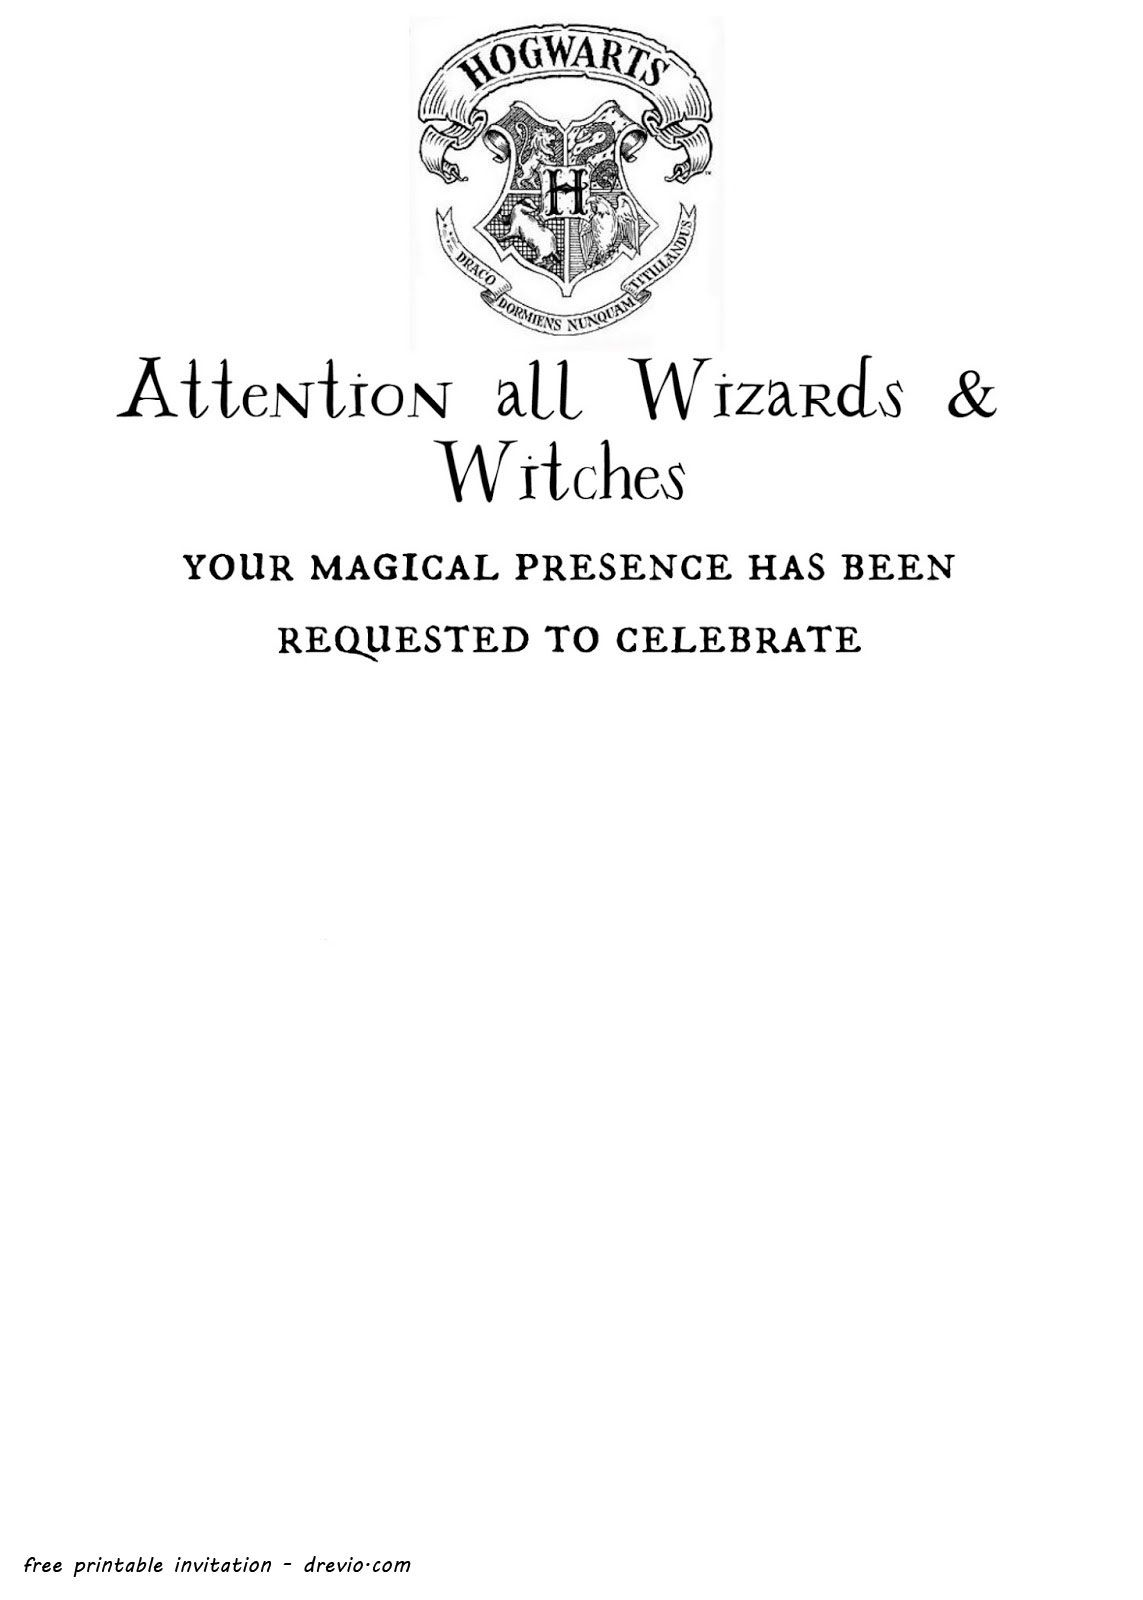 Free Printable Harry Potter Hogwarts Invitation Template Harry